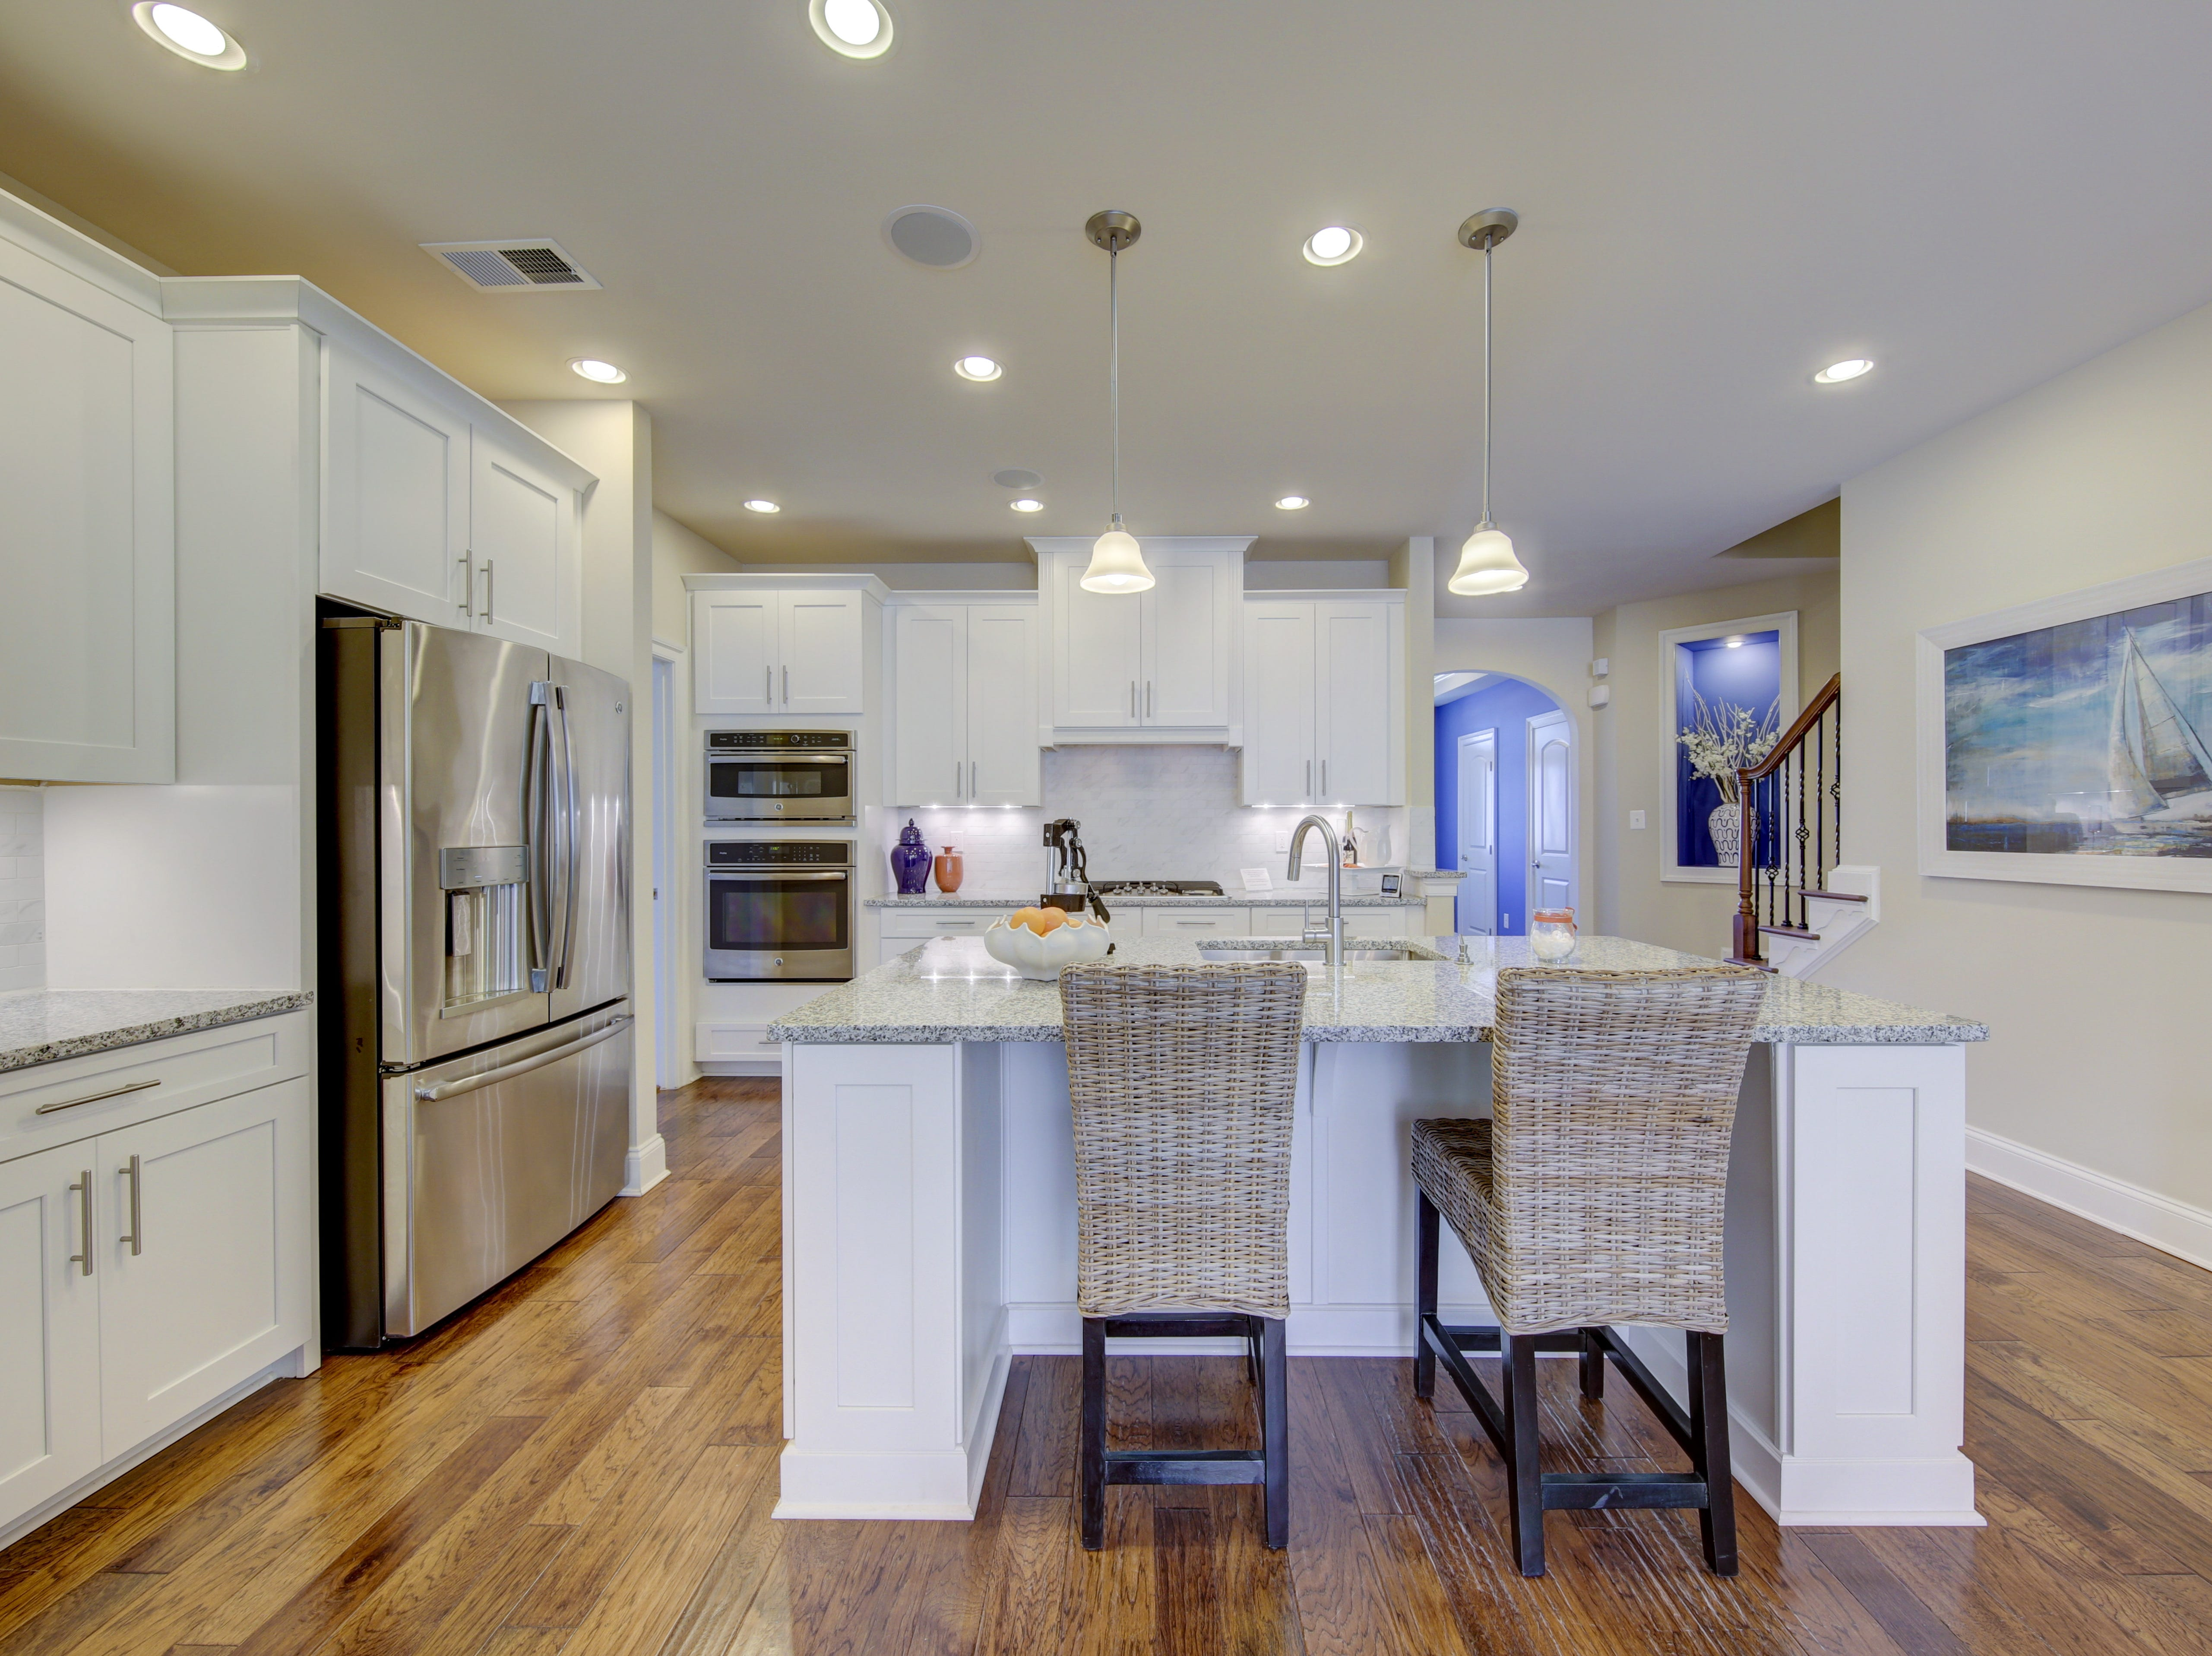 The kitchen in the model home of The Overlook in Selbyville has stainless steel appliances and a center island.